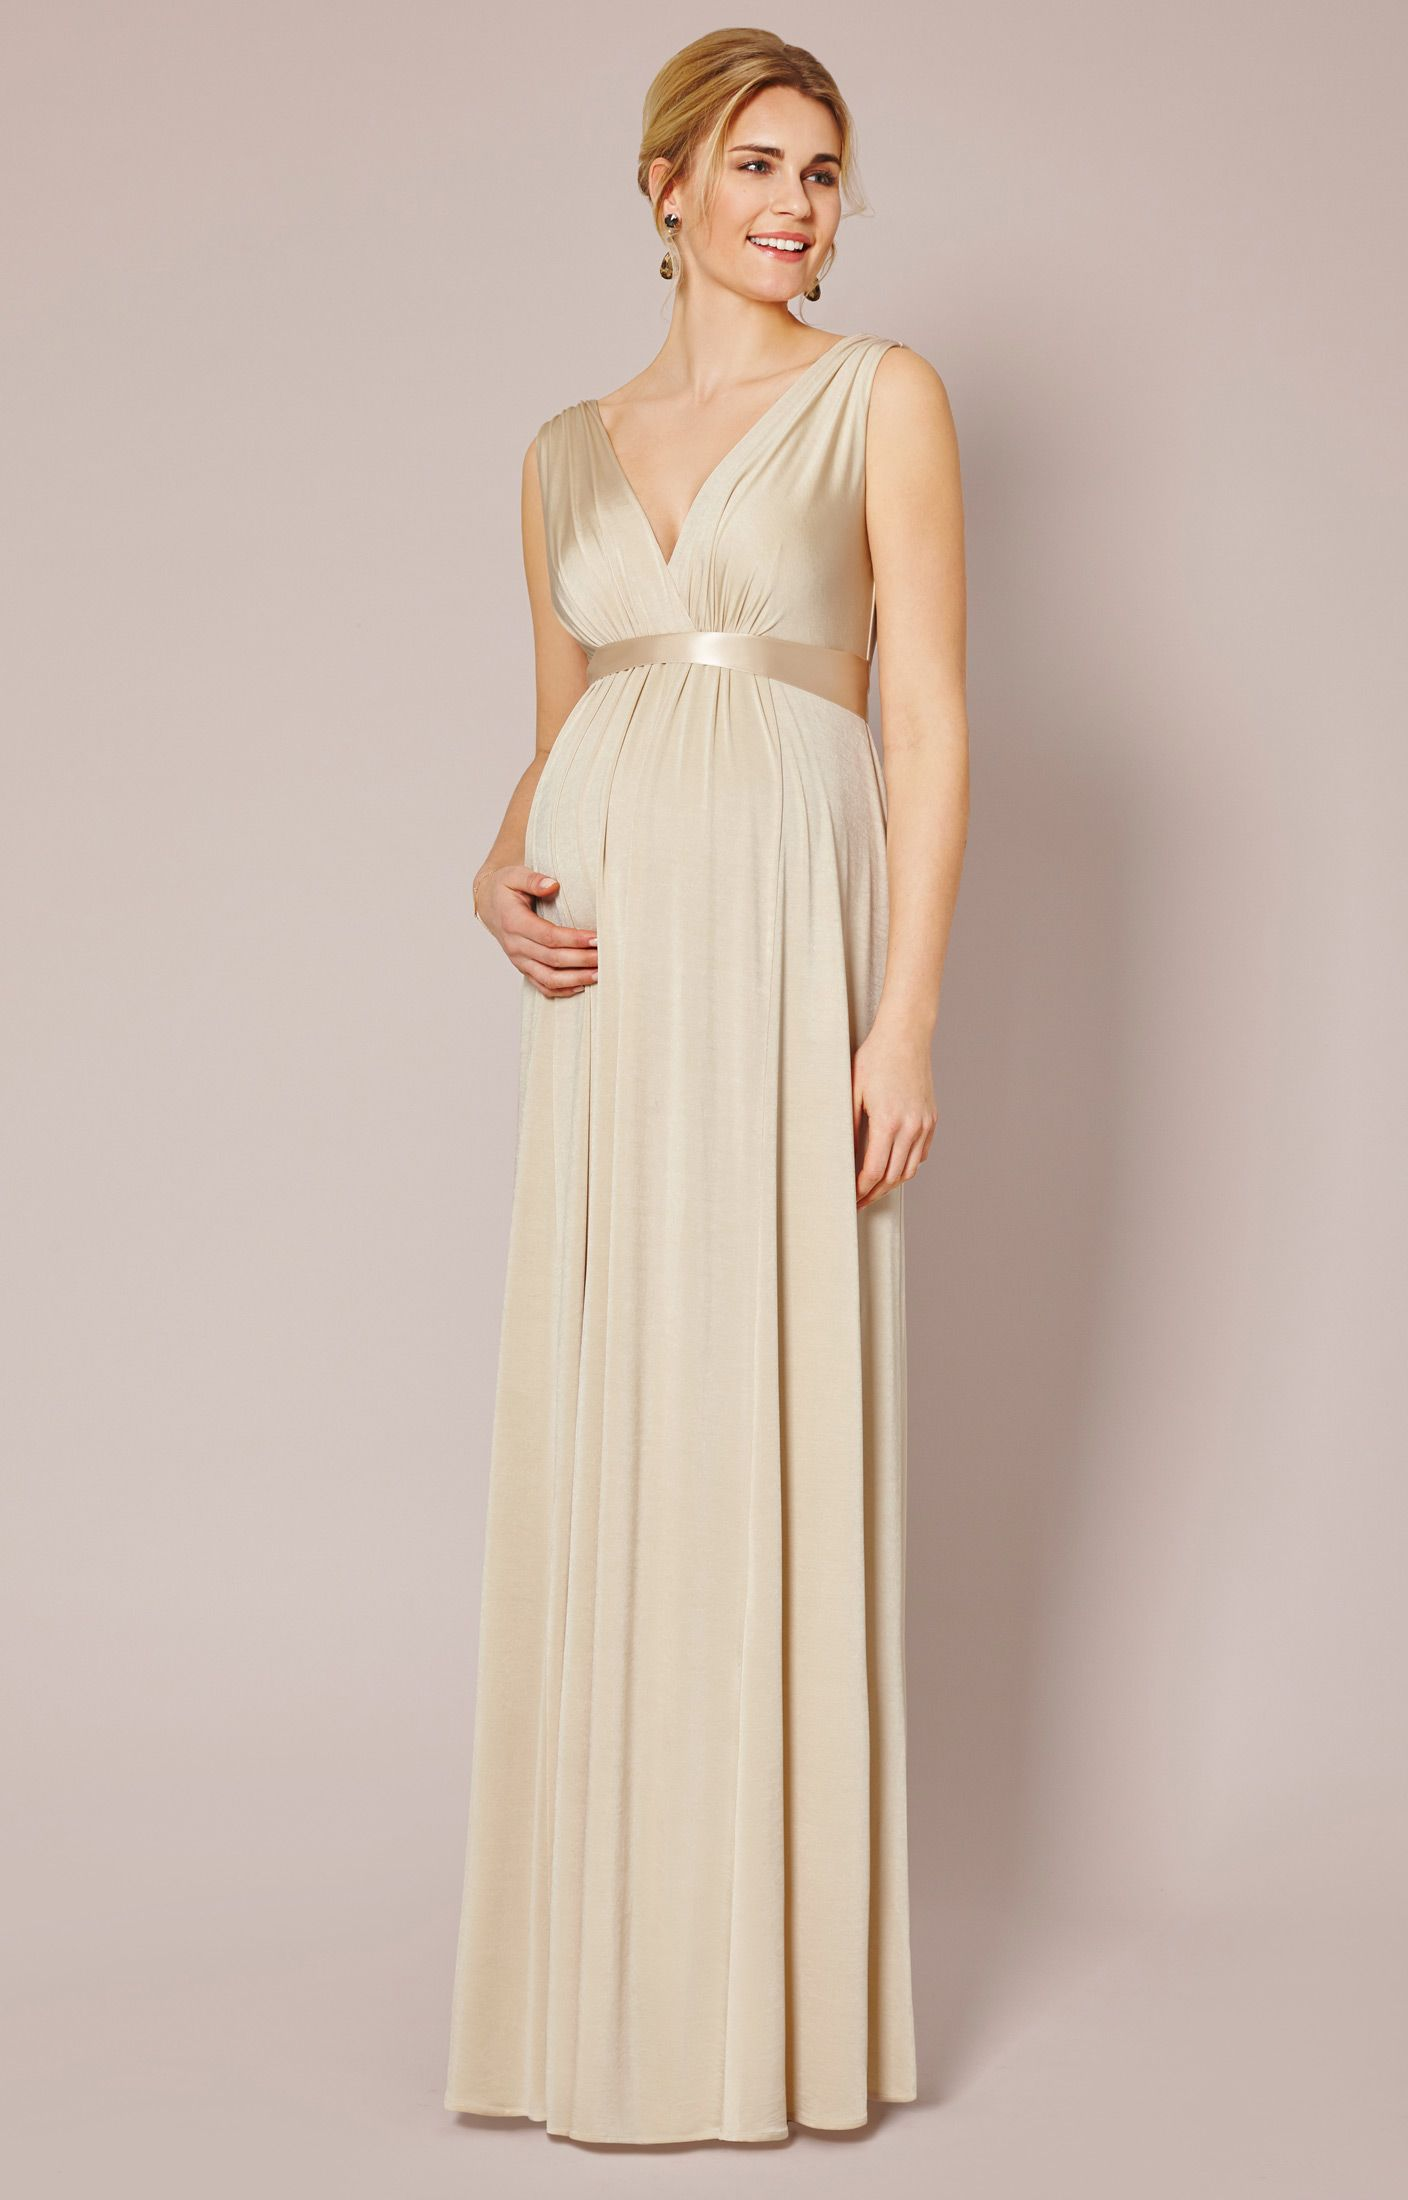 Anastasia gown long maternity gowns tiffany rose and maternity grecian goddess gorgeous our anastasia maternity gown now comes in precious gold dust for a spectacular occasion dress ombrellifo Image collections